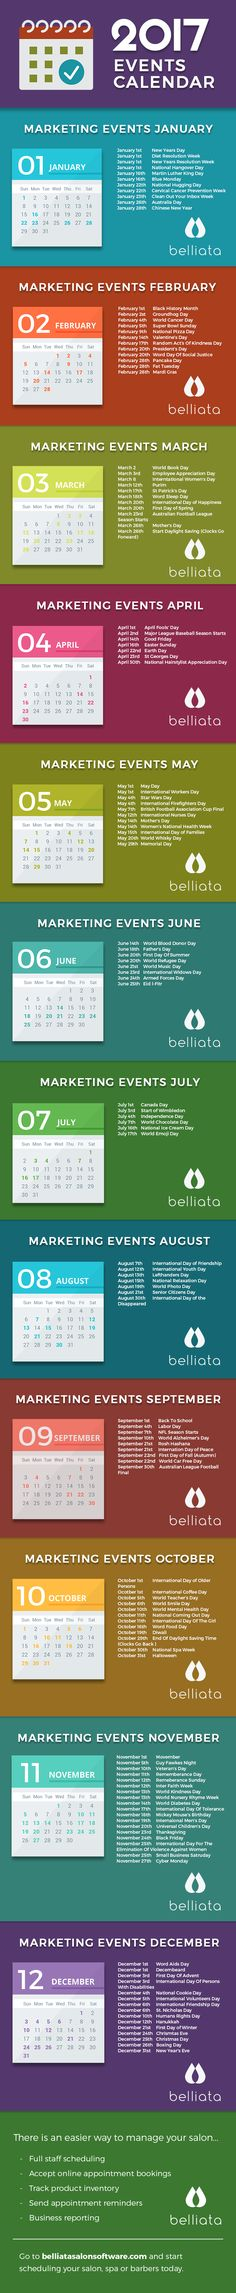 @getbelliata have produced this excellent national days calendar to help you plan lots of great marketing, promotion and social media activity in 2017.